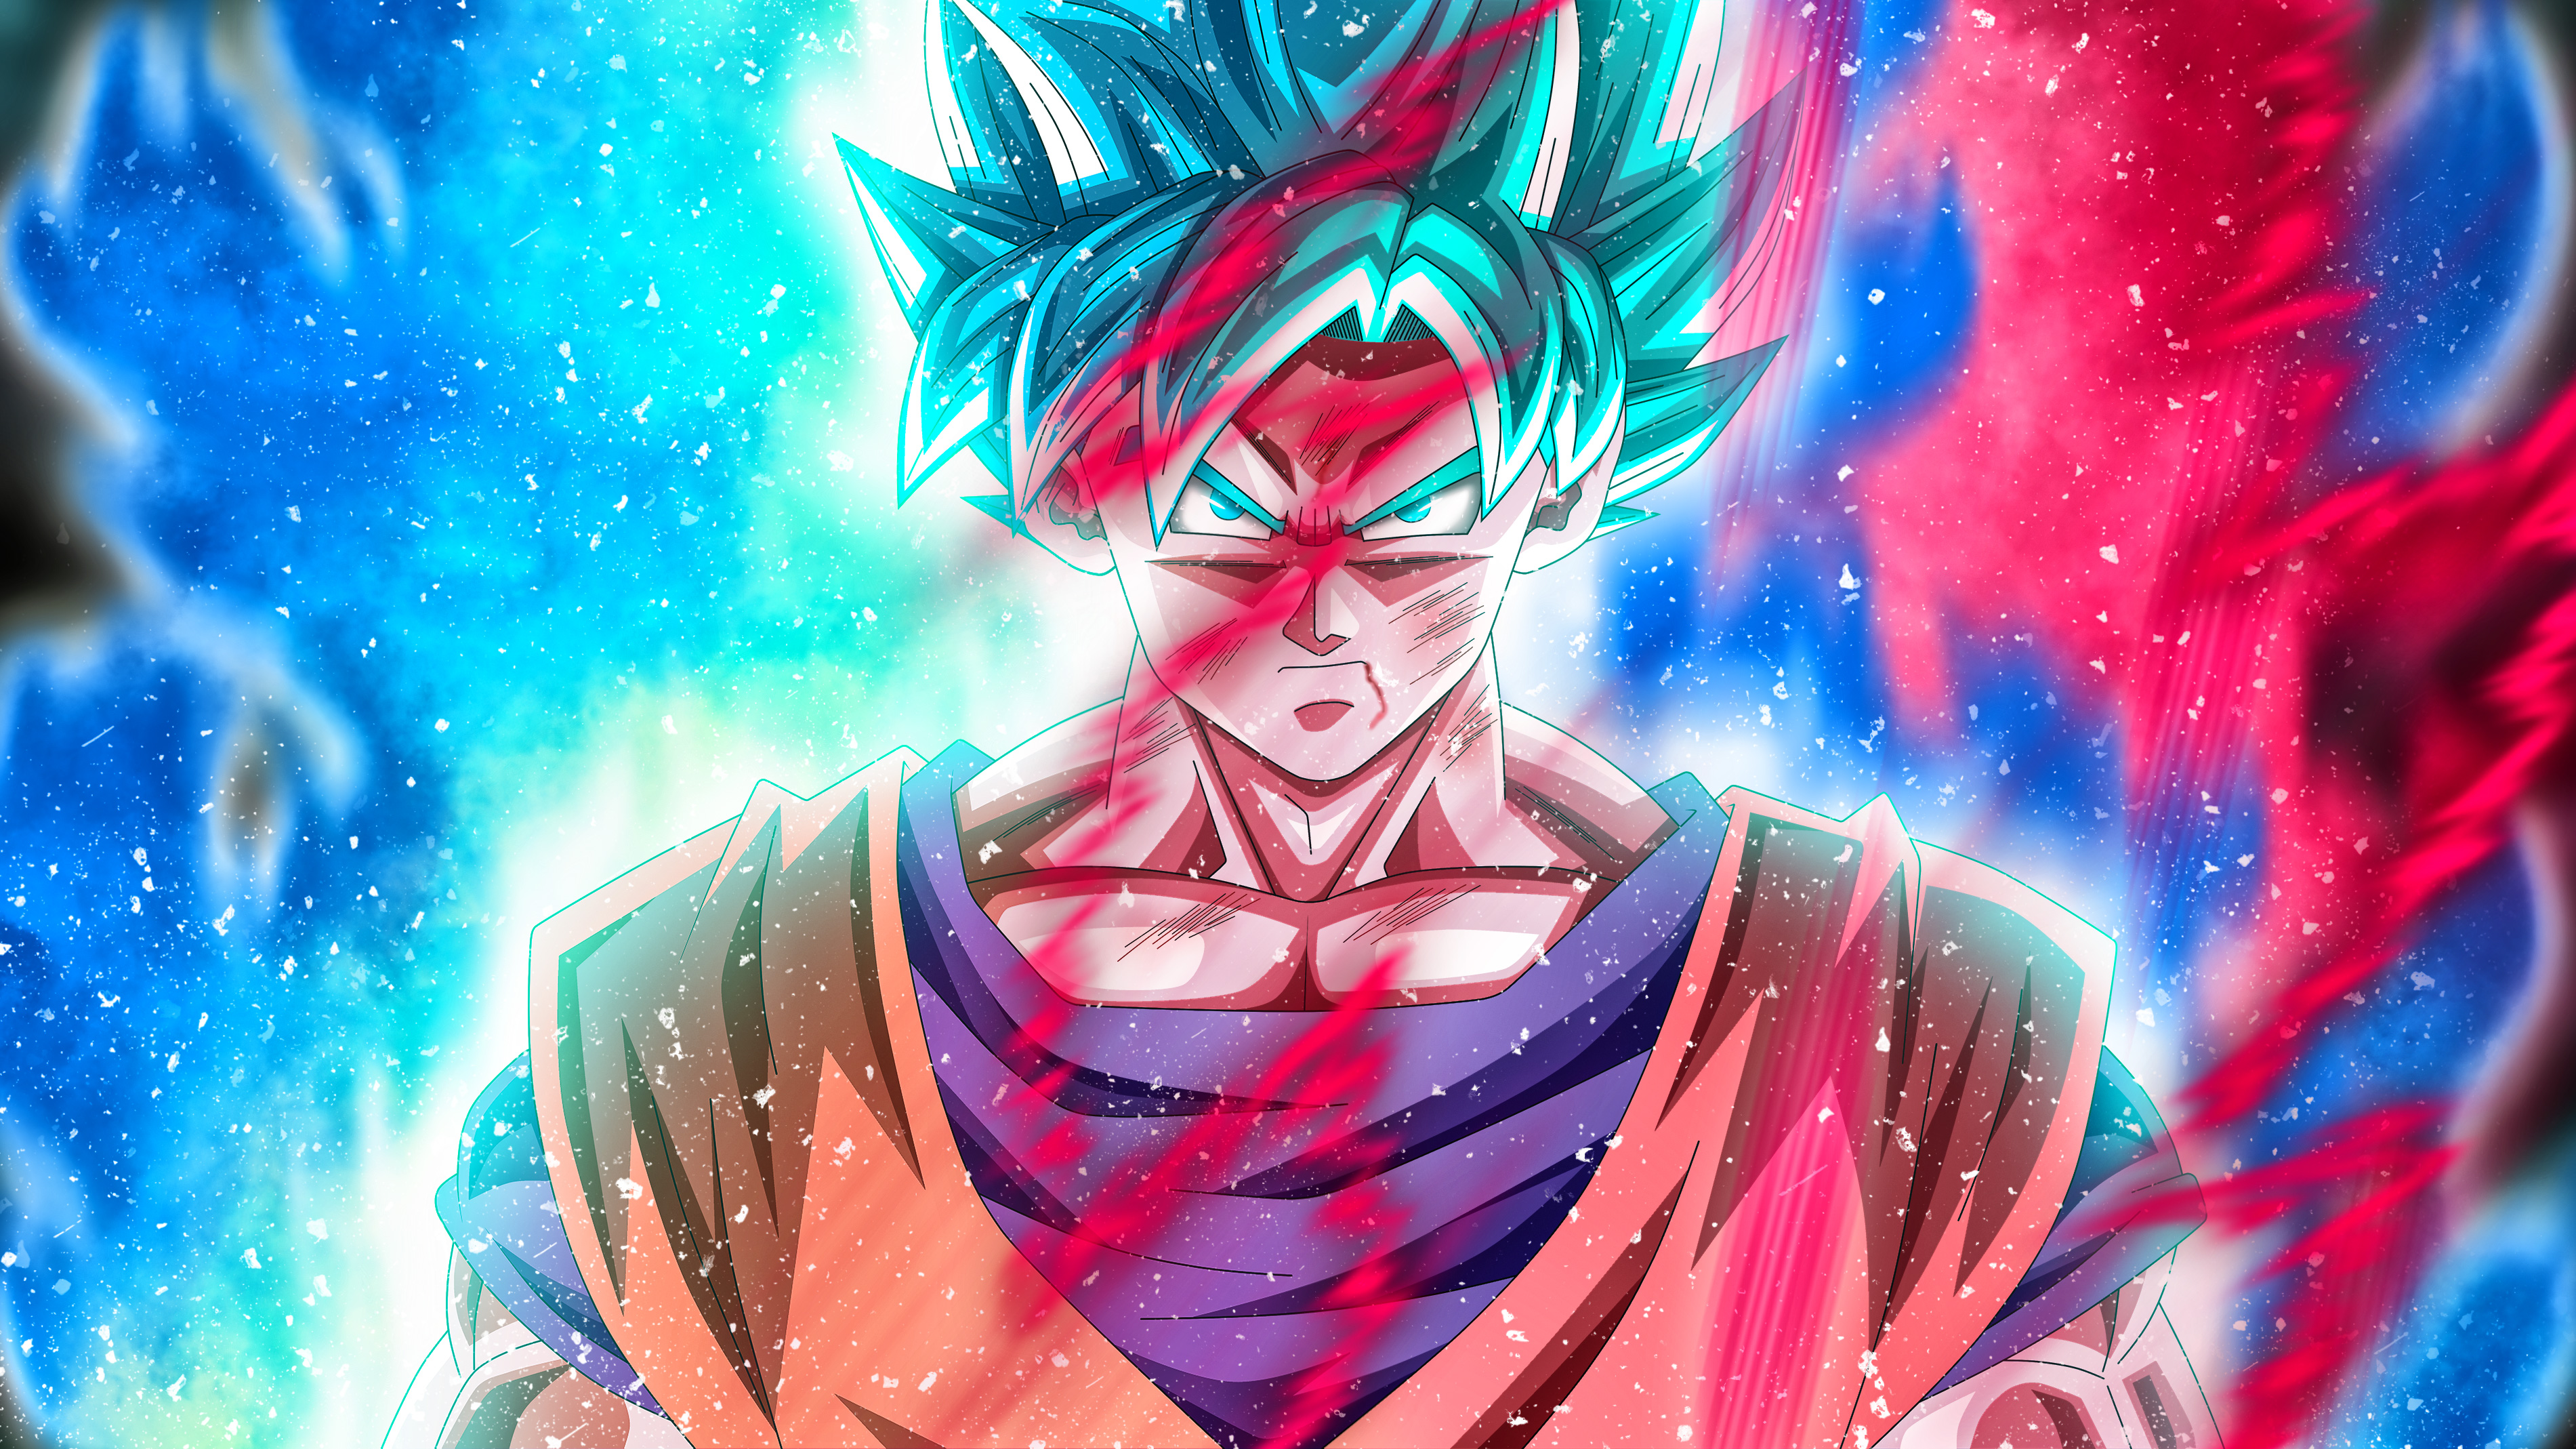 Dragon Ball Super Hd Anime 4k Wallpapers Images Backgrounds